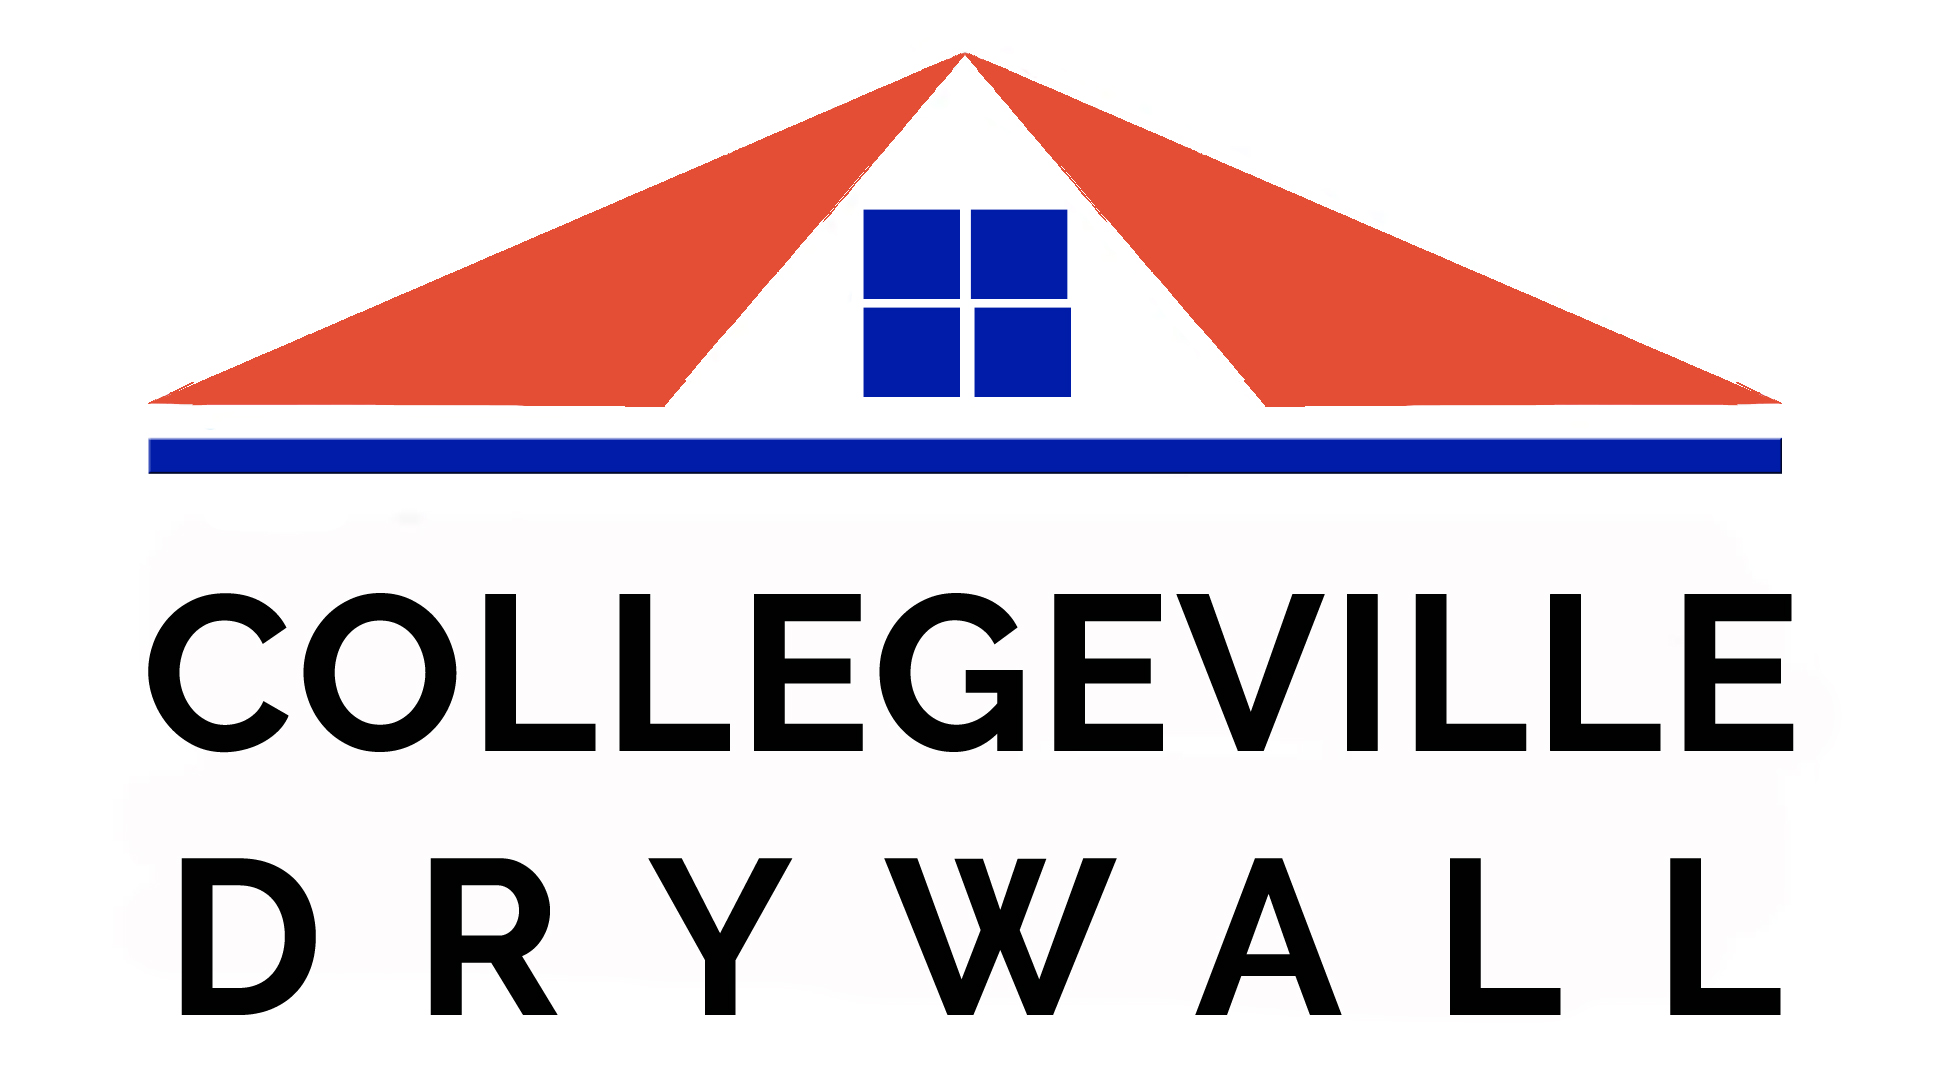 Collegeville Drywall